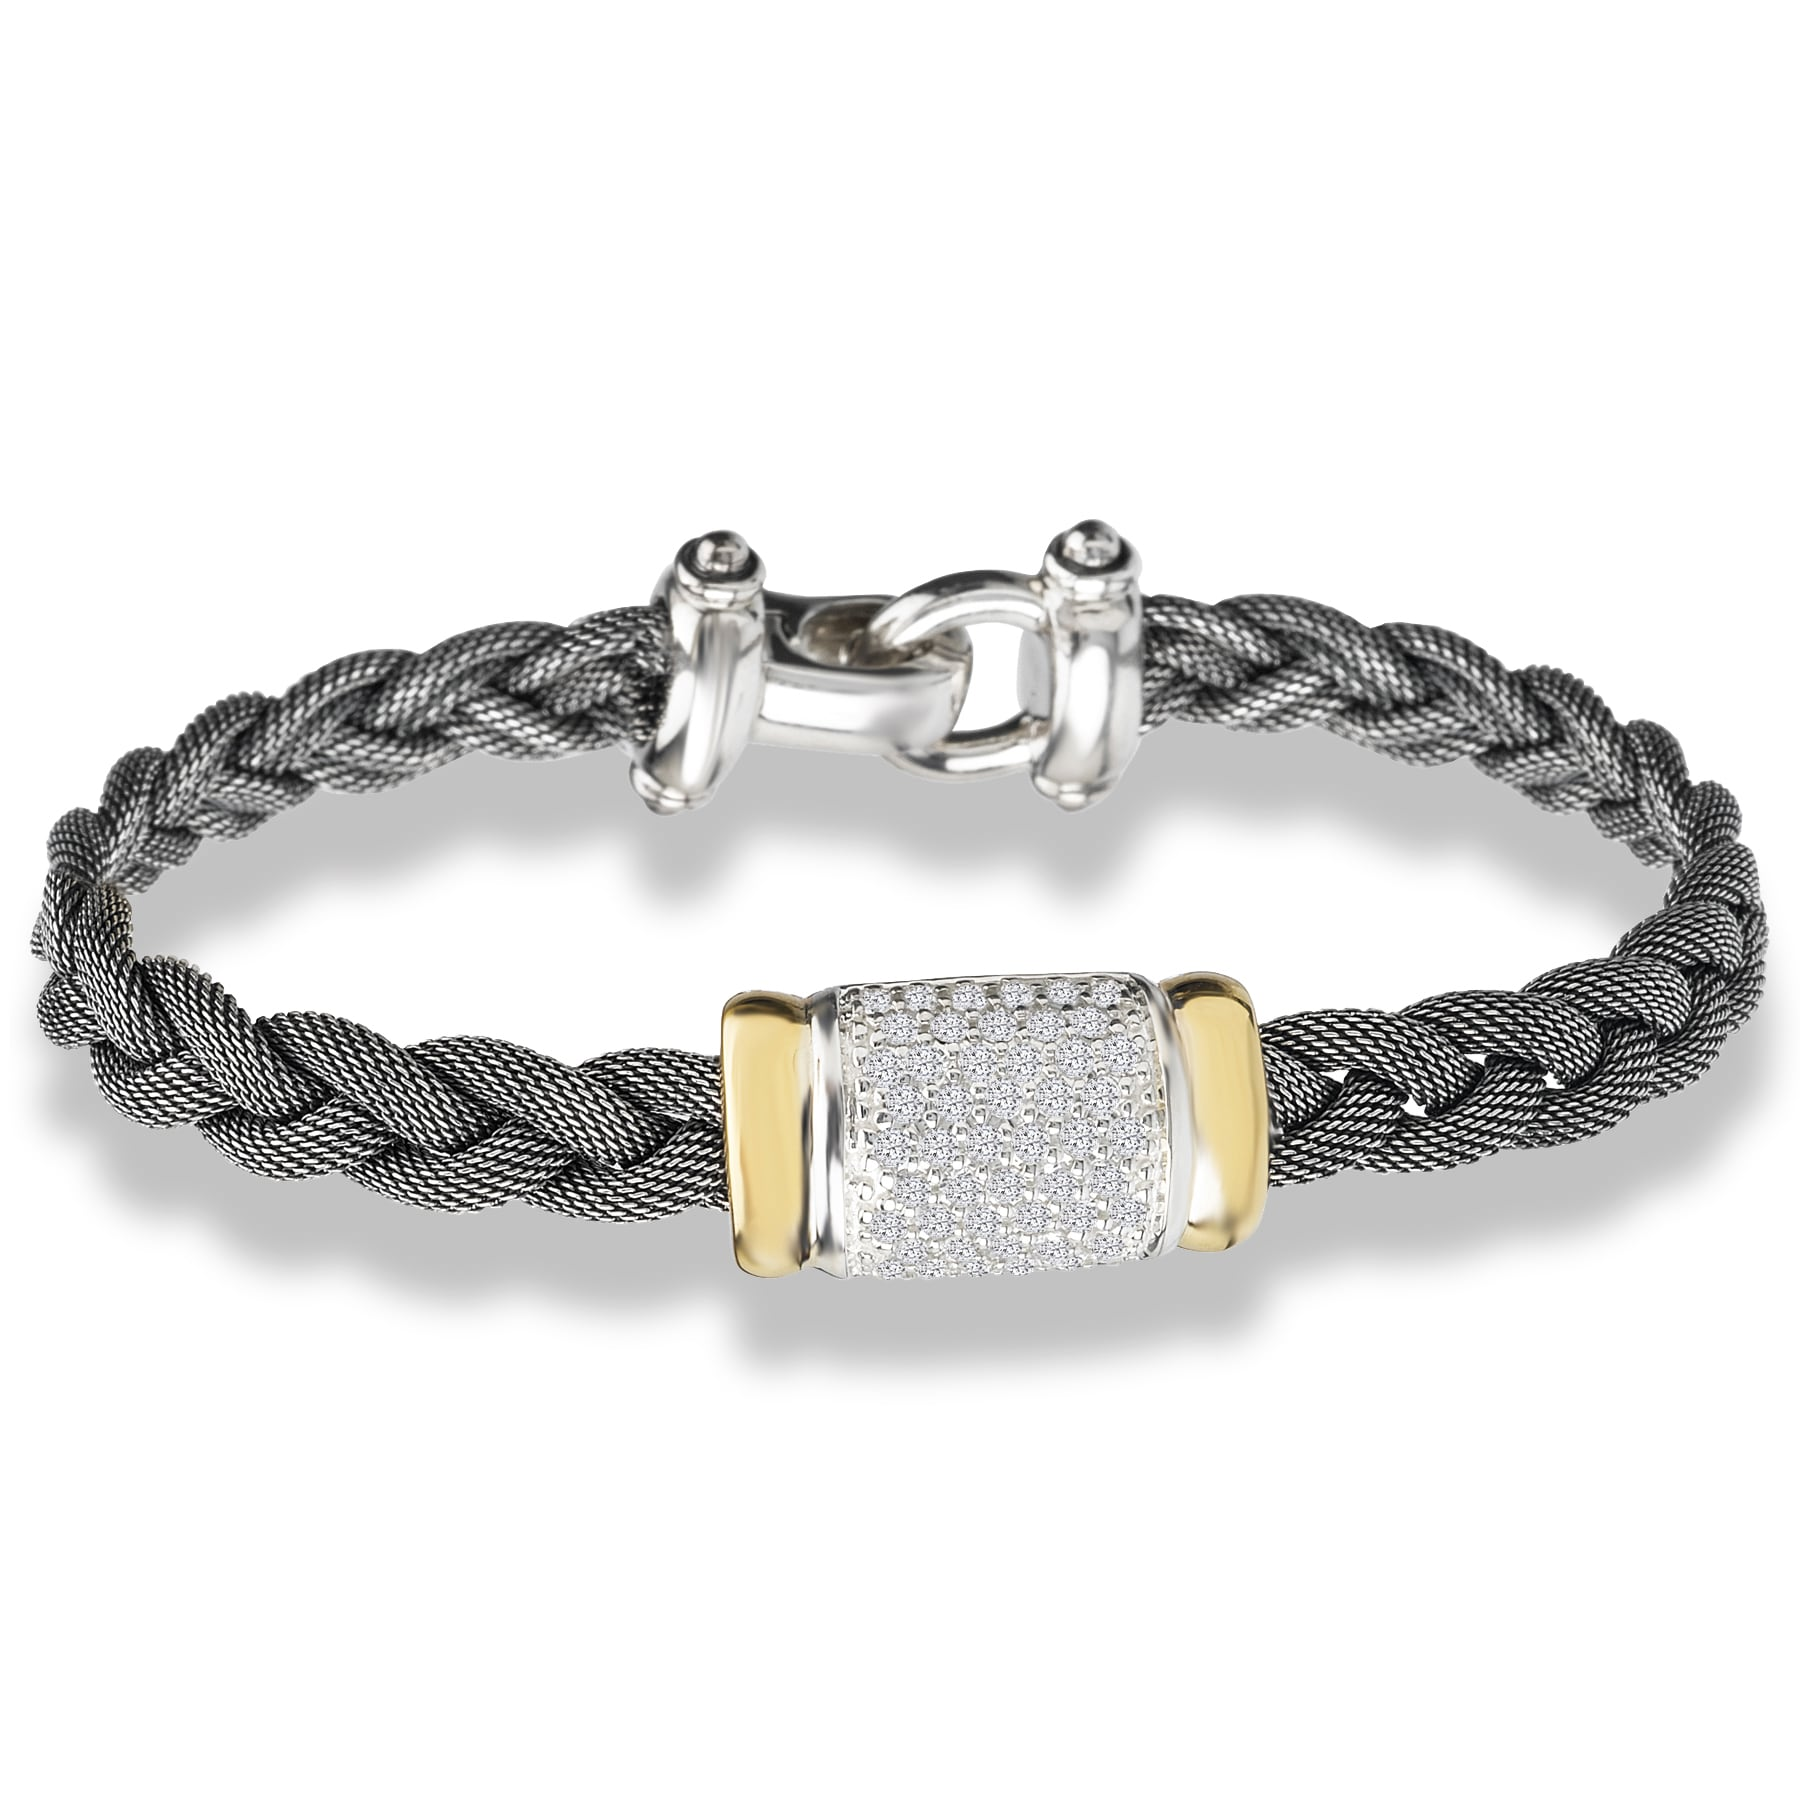 Avanti Palladium Silver 18k Yellow White Sapphire and Braided Mesh Bracelet